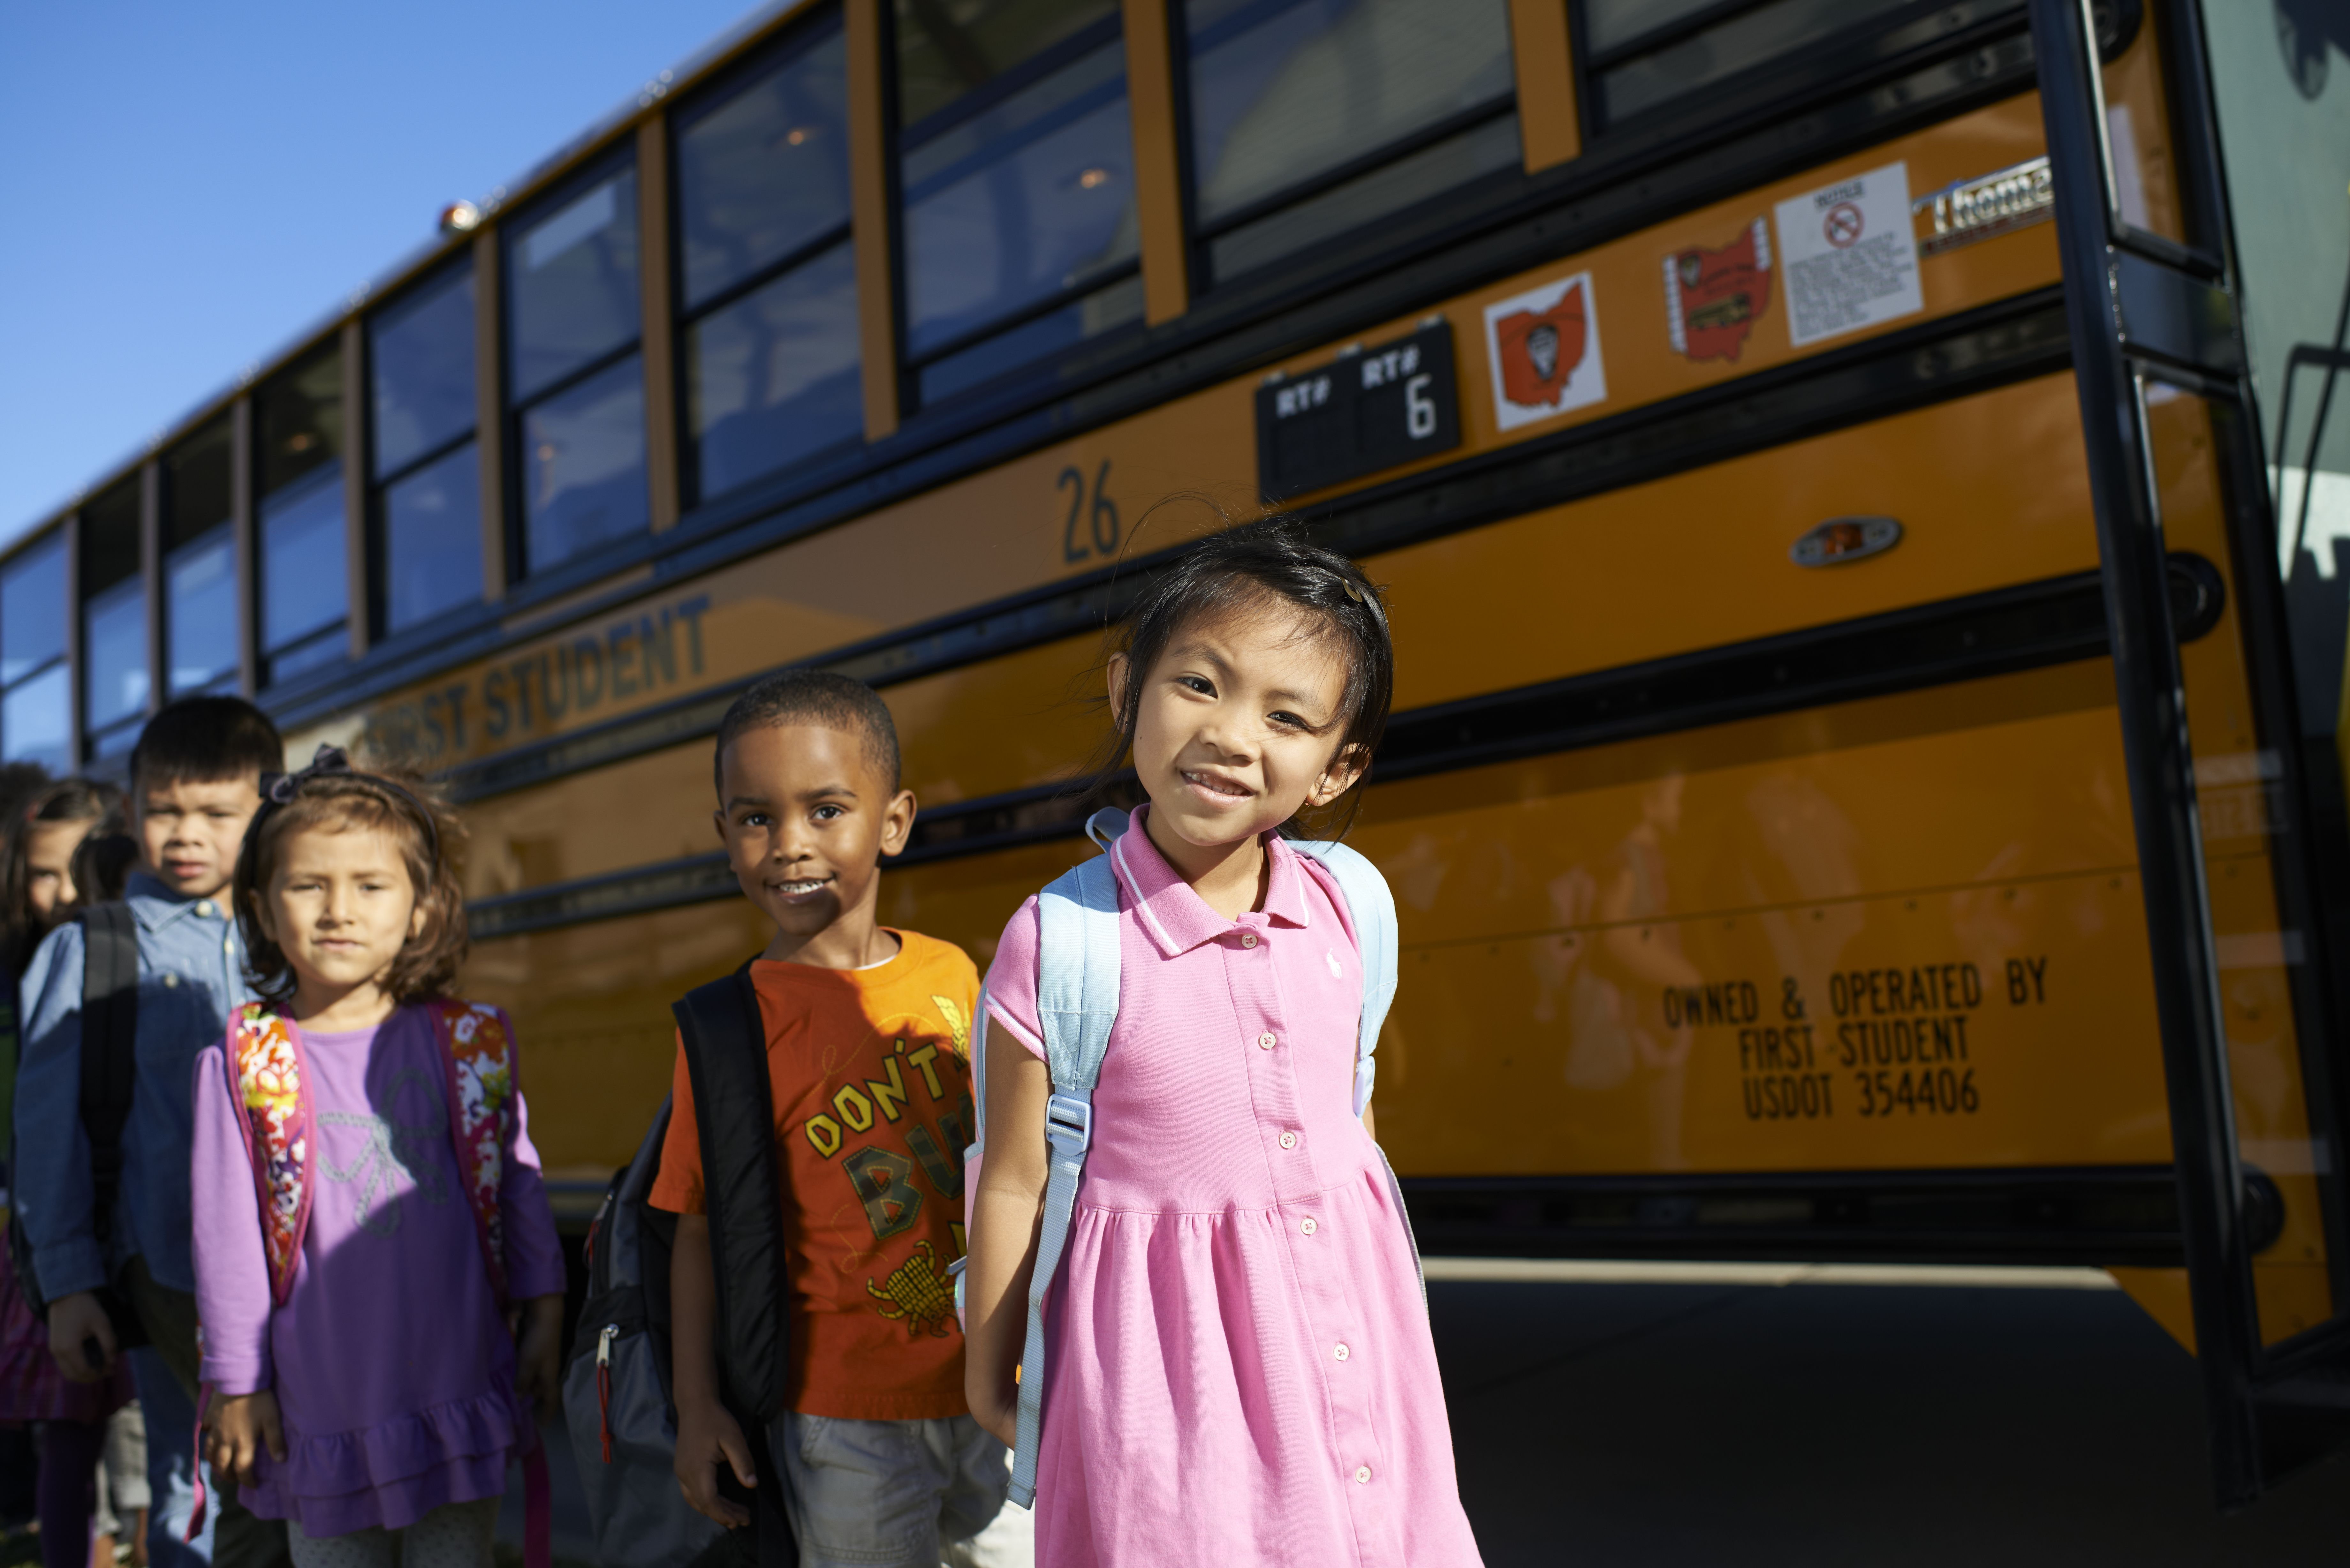 How Thomas, First Student are working toward a better bus